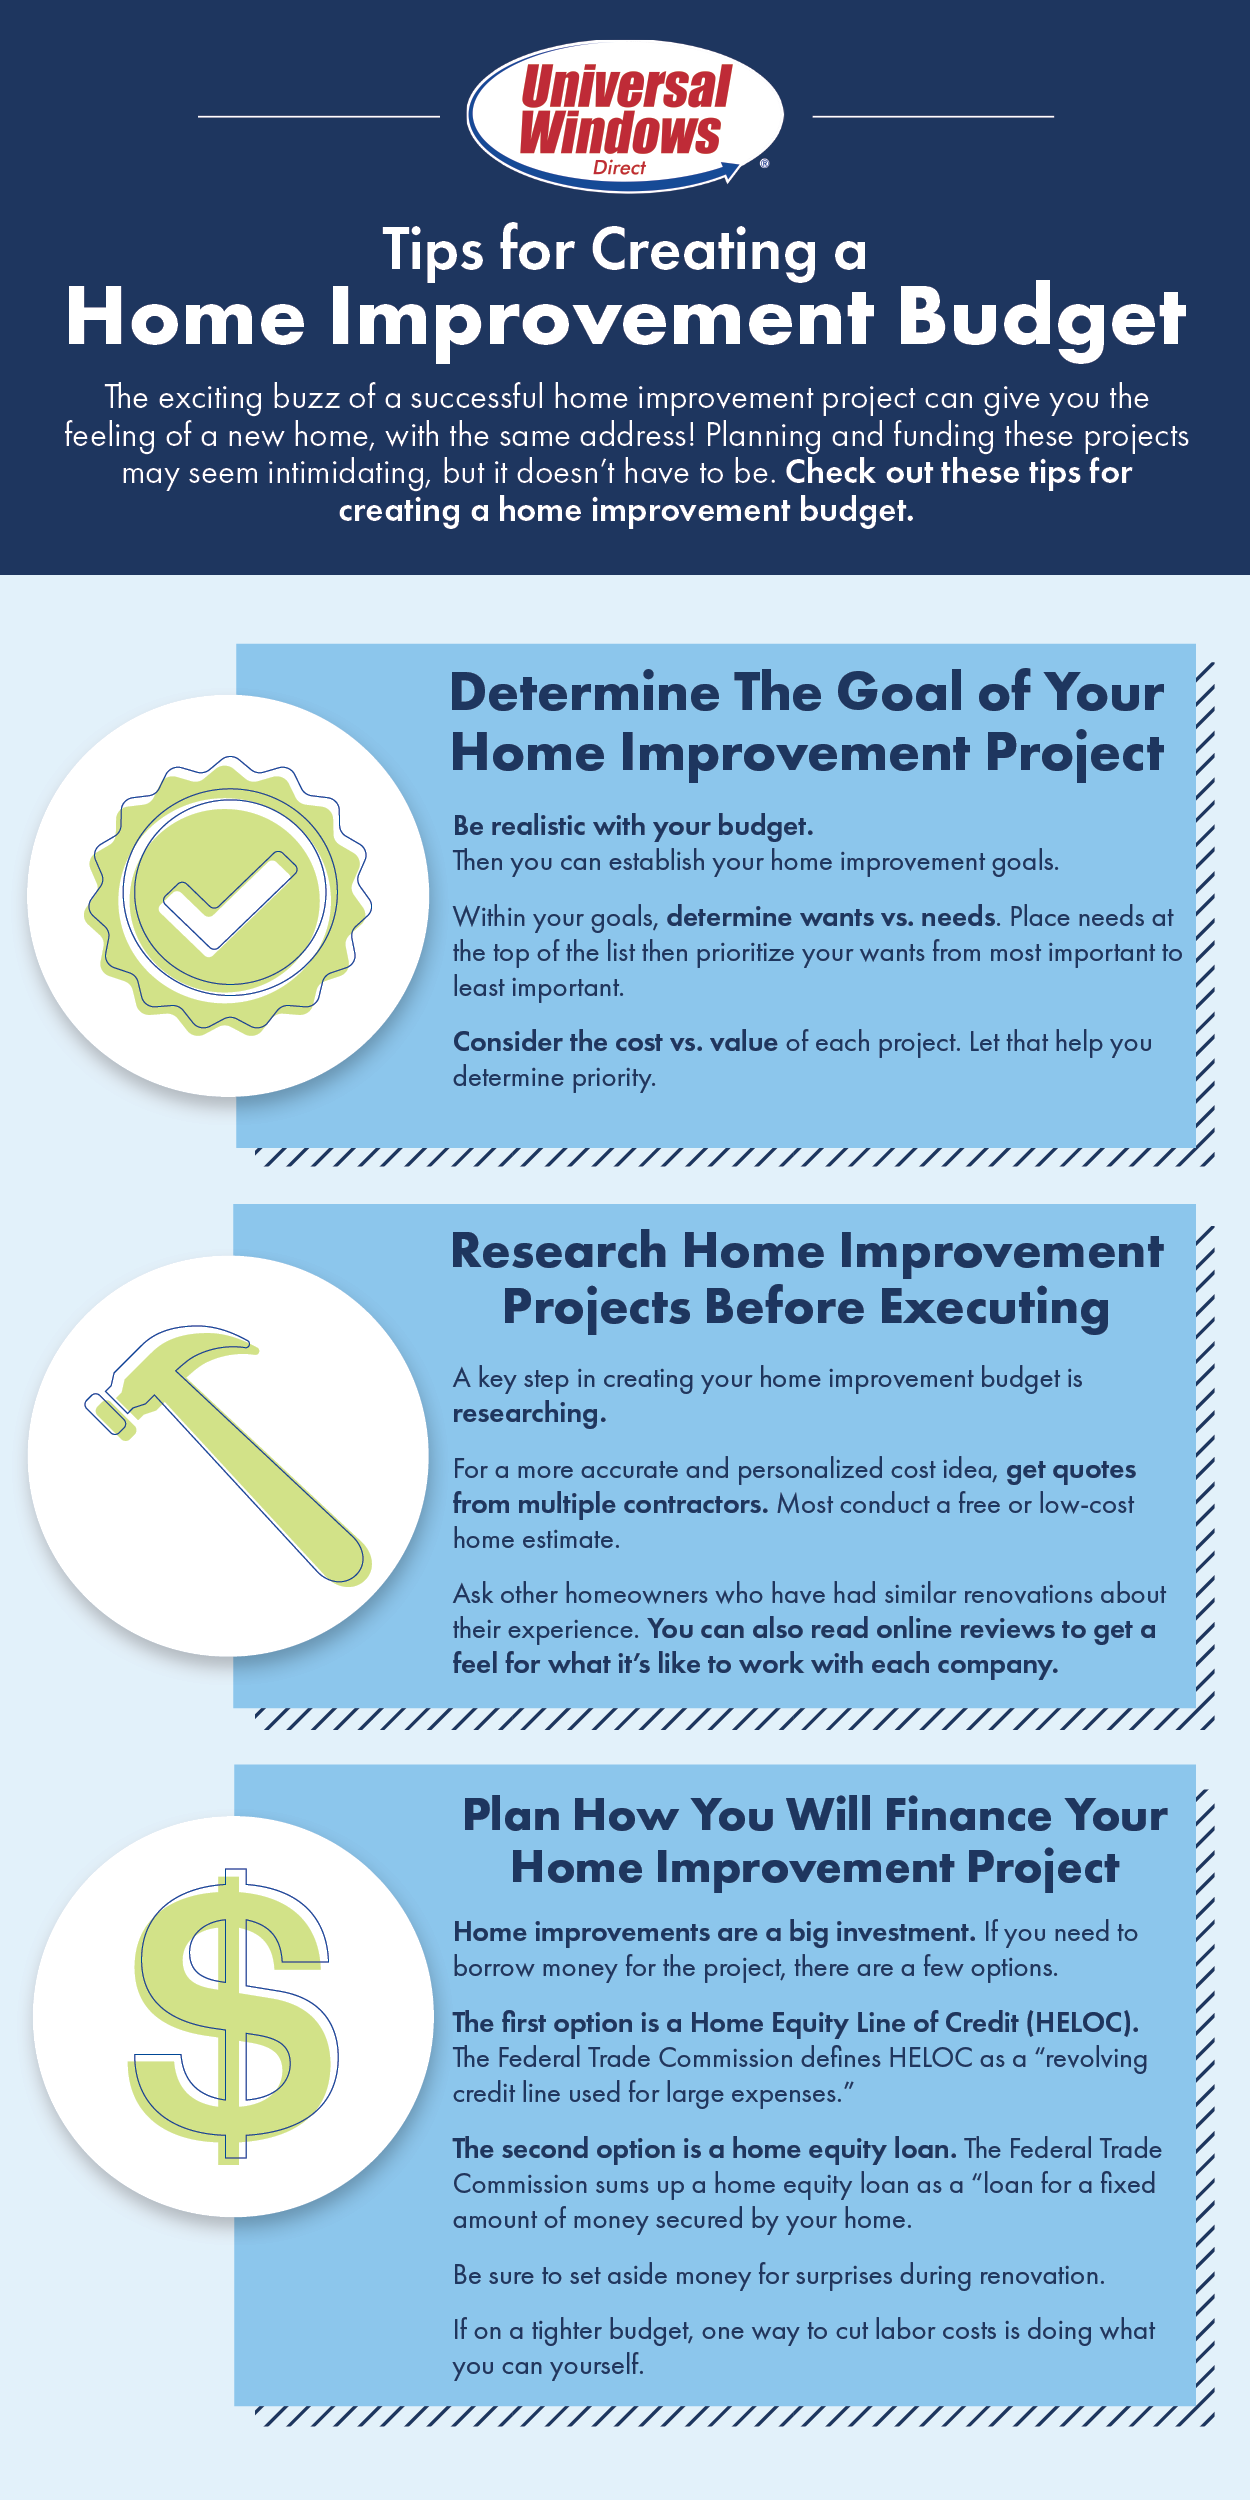 How to create a home improvement budget